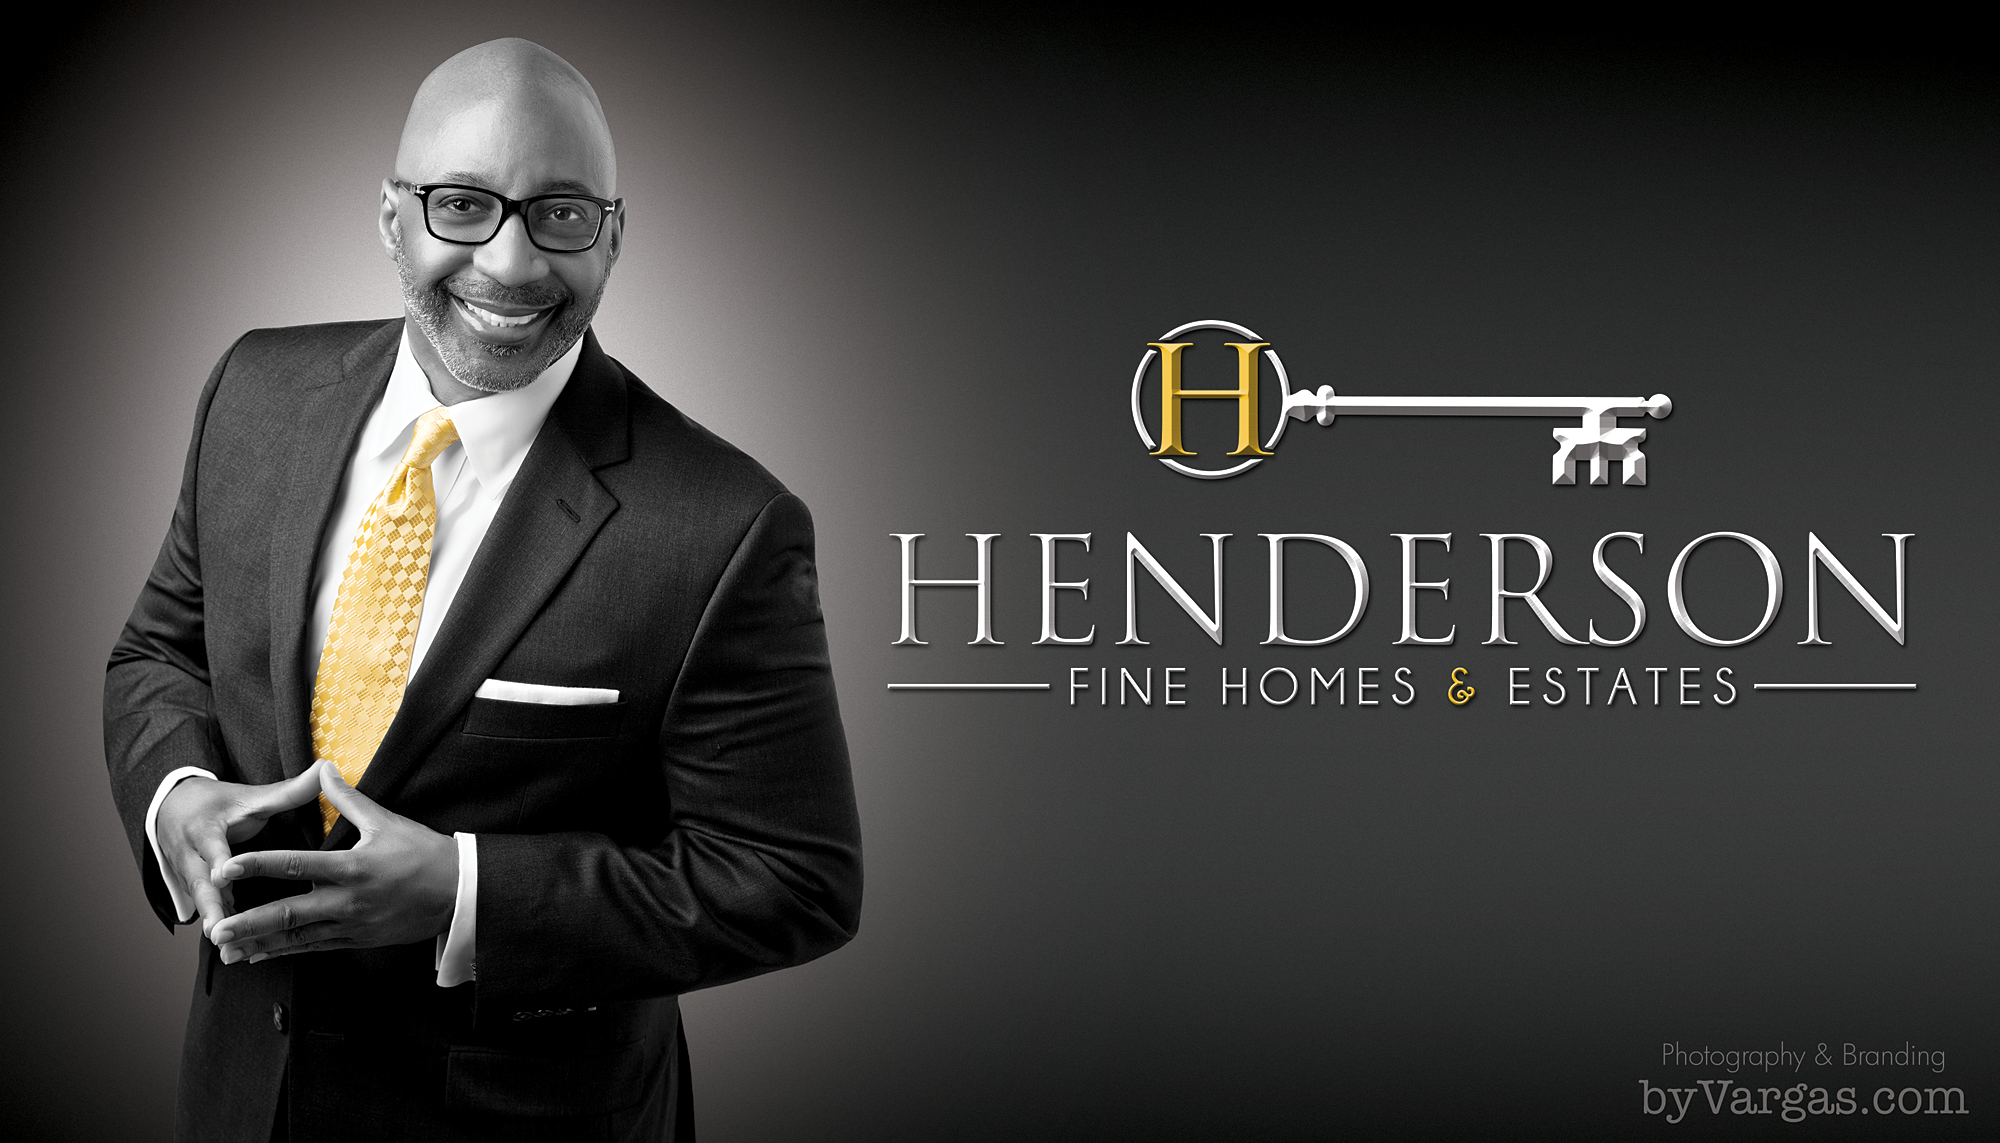 Henderson-Fine-Homes-Master-File.png